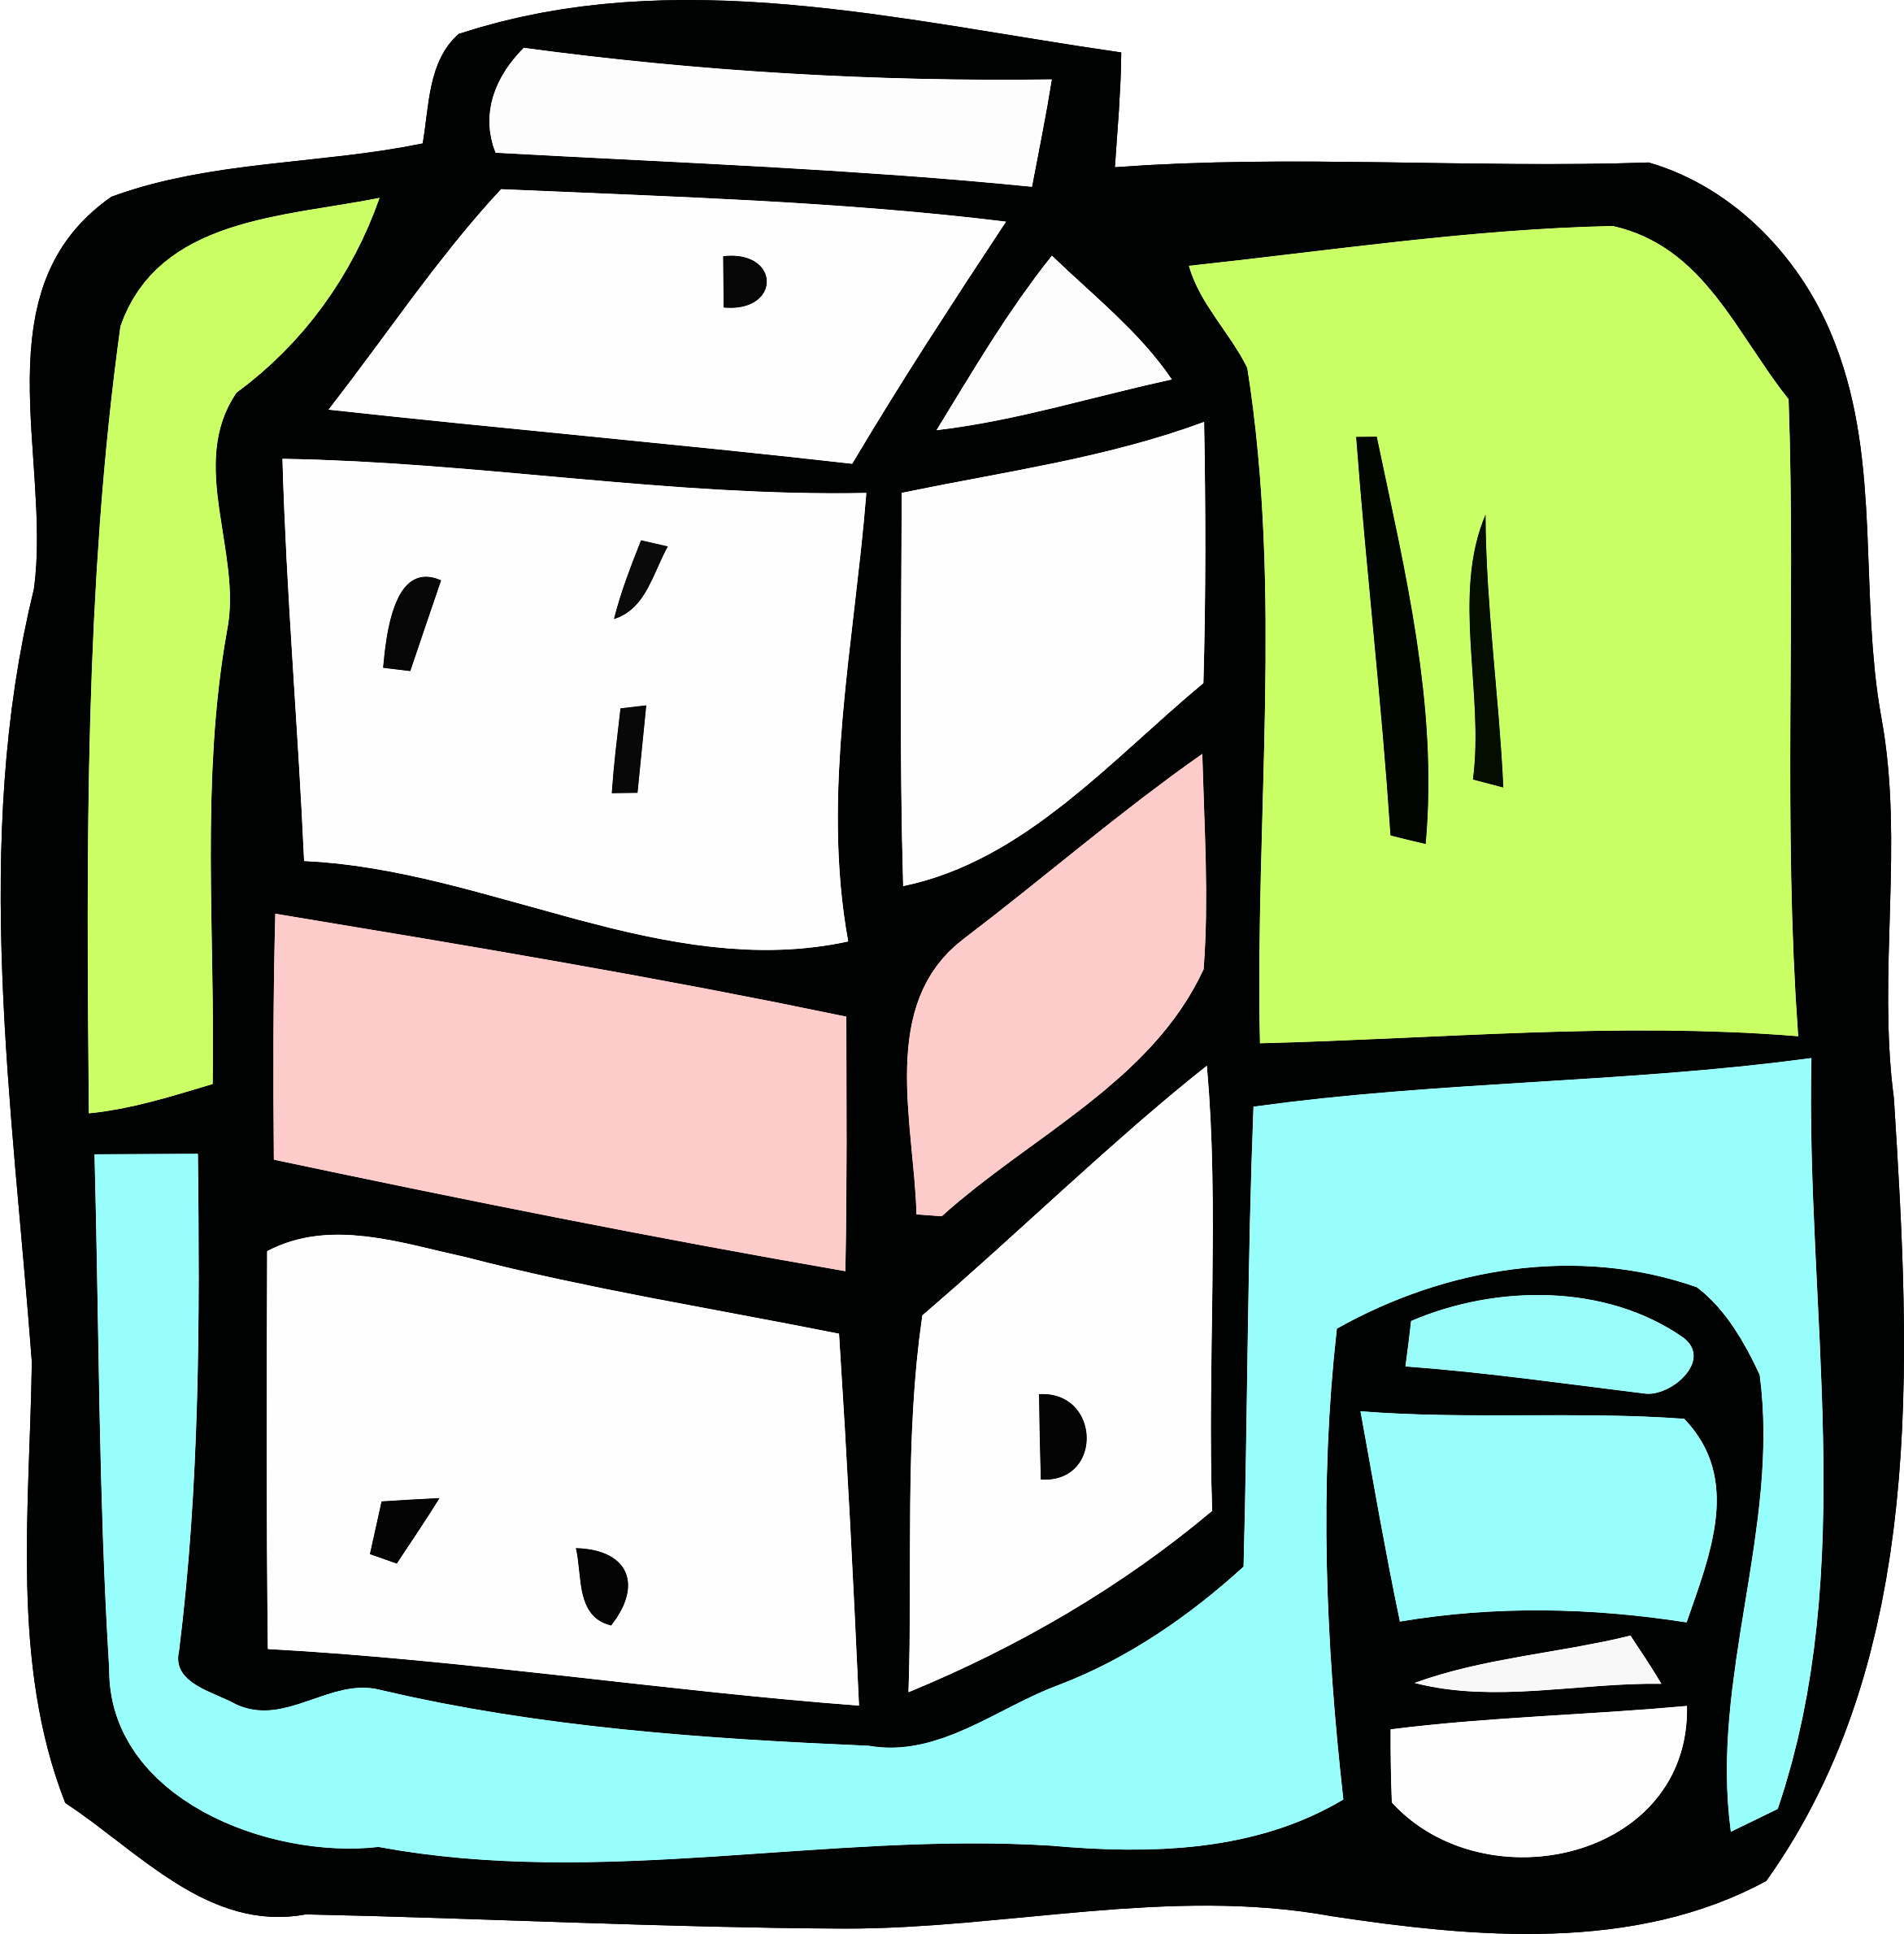 And drink icon big. Milk clipart milk food